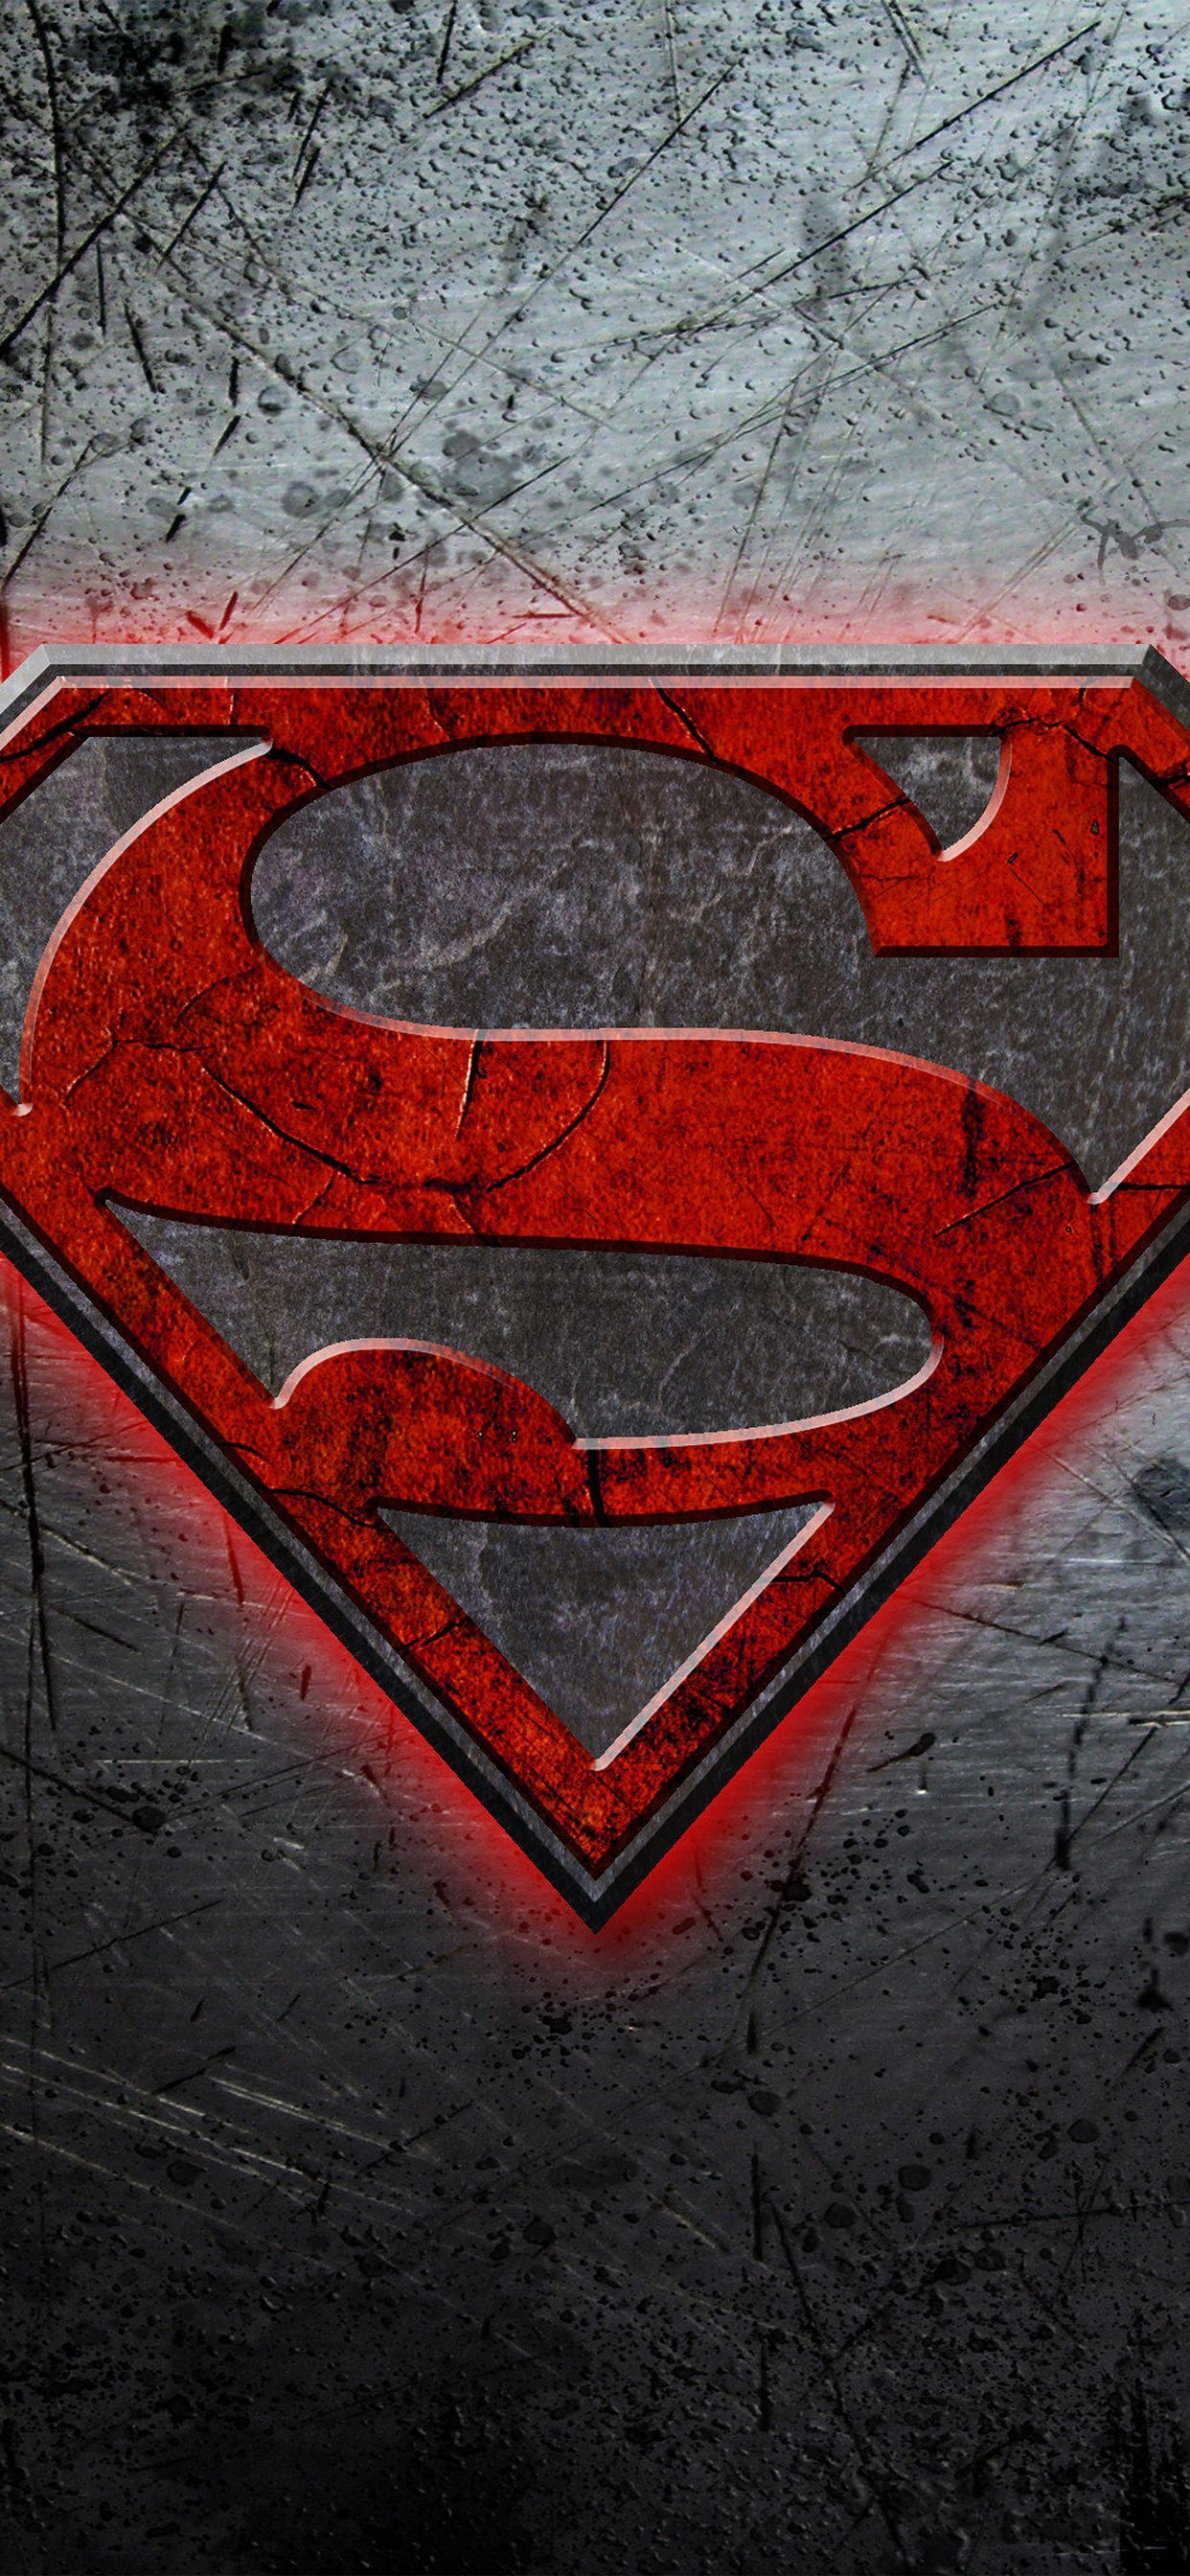 Apple Iphone Xs Max Wallpapers Android Wallpaper Hypebeast Wallpaper Superman Art